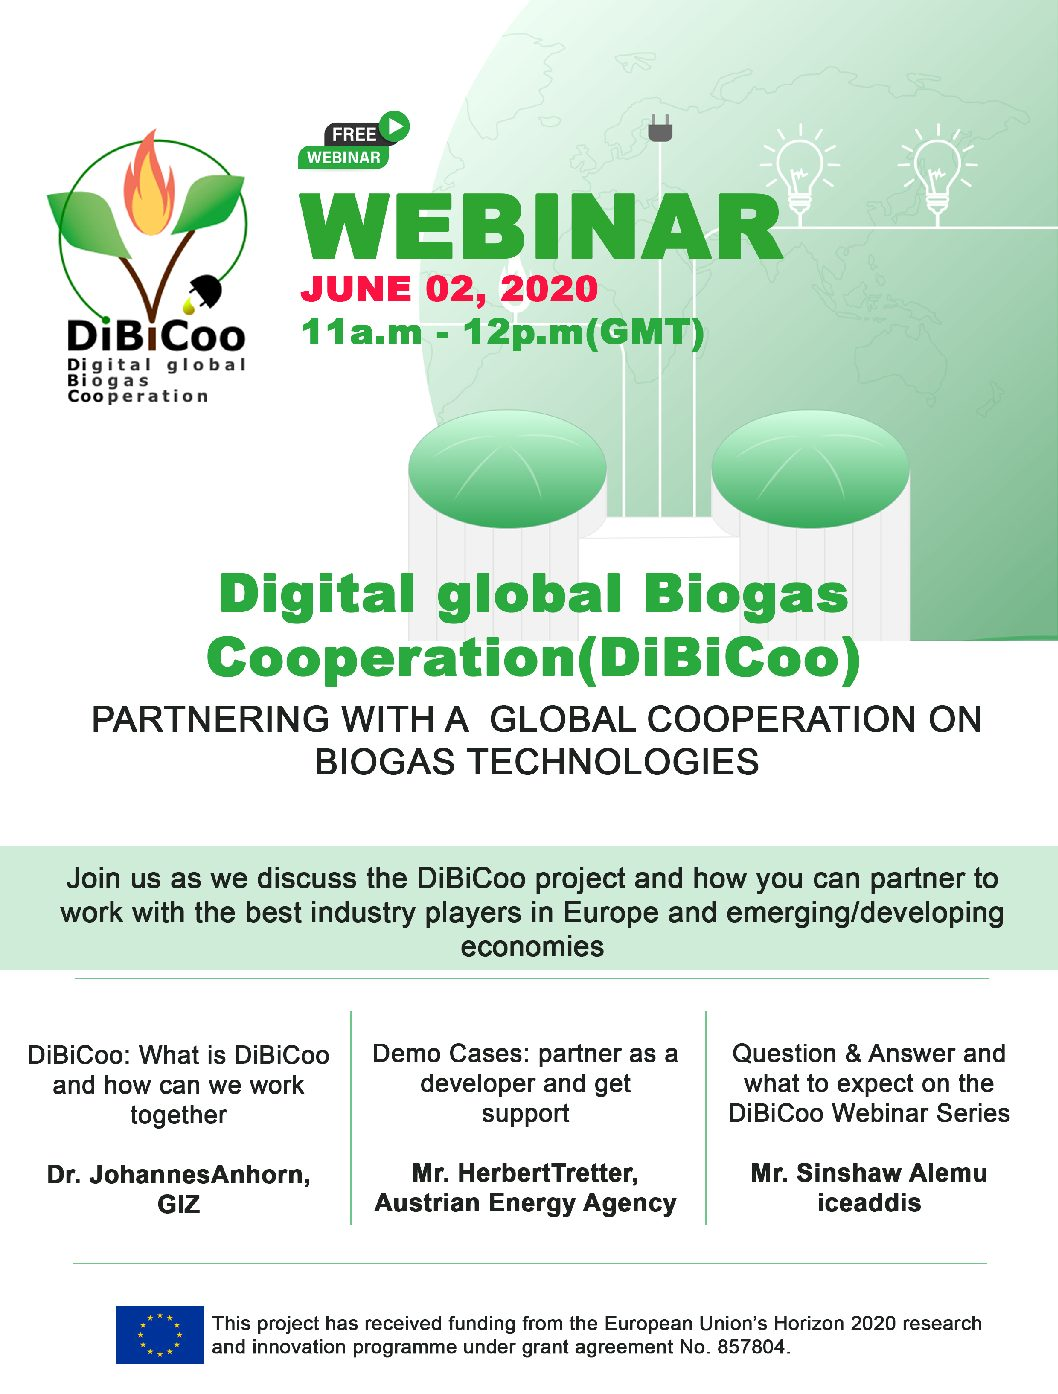 DIBICOO webinar 'Partnering with a global cooperation on biogas technologies'